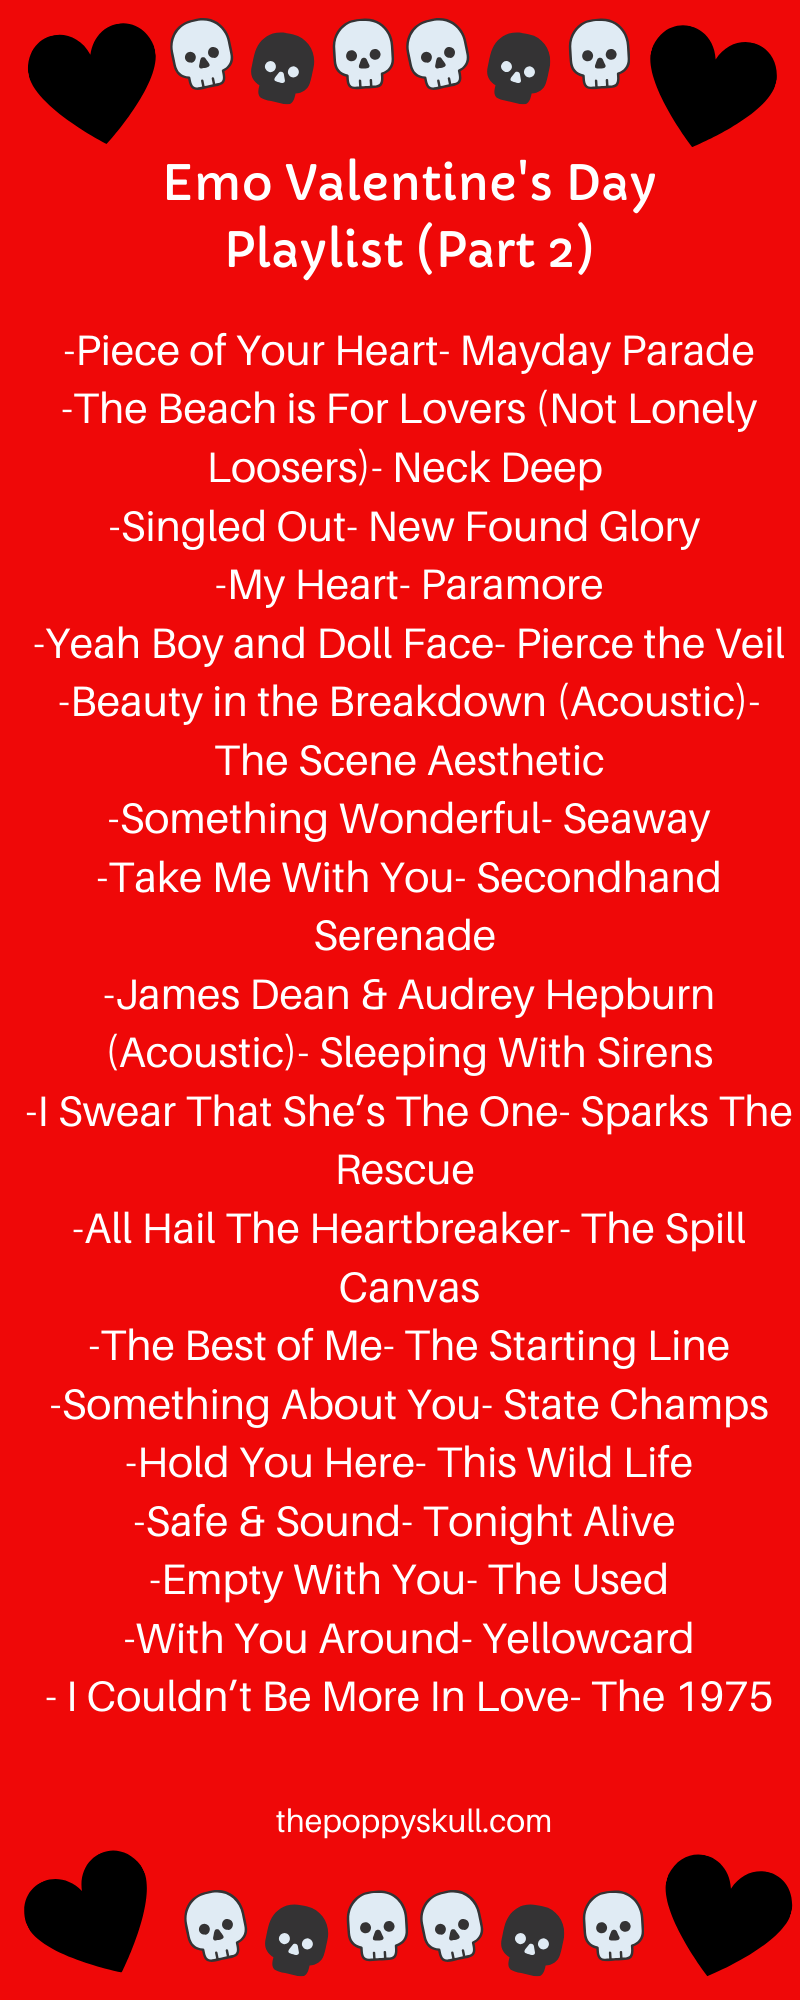 Emo Valentine S Day Playlist 2020 The Poppy Skull In 2021 Emo Song Love Songs Playlist My Chemical Romance Songs